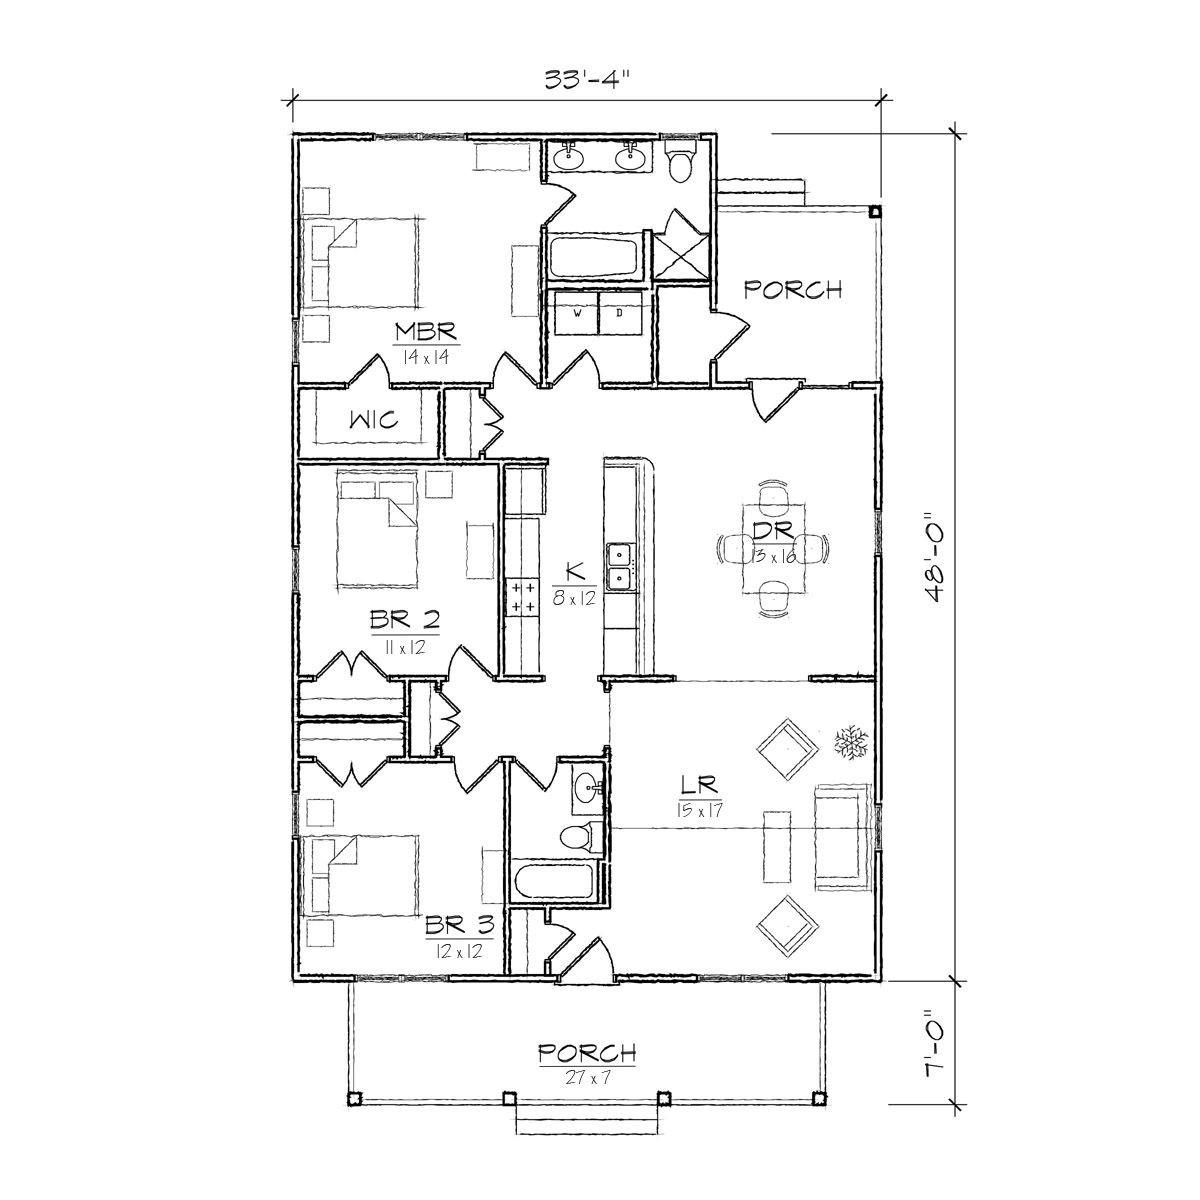 Small bungalow house plans zionstarnet Find the best images